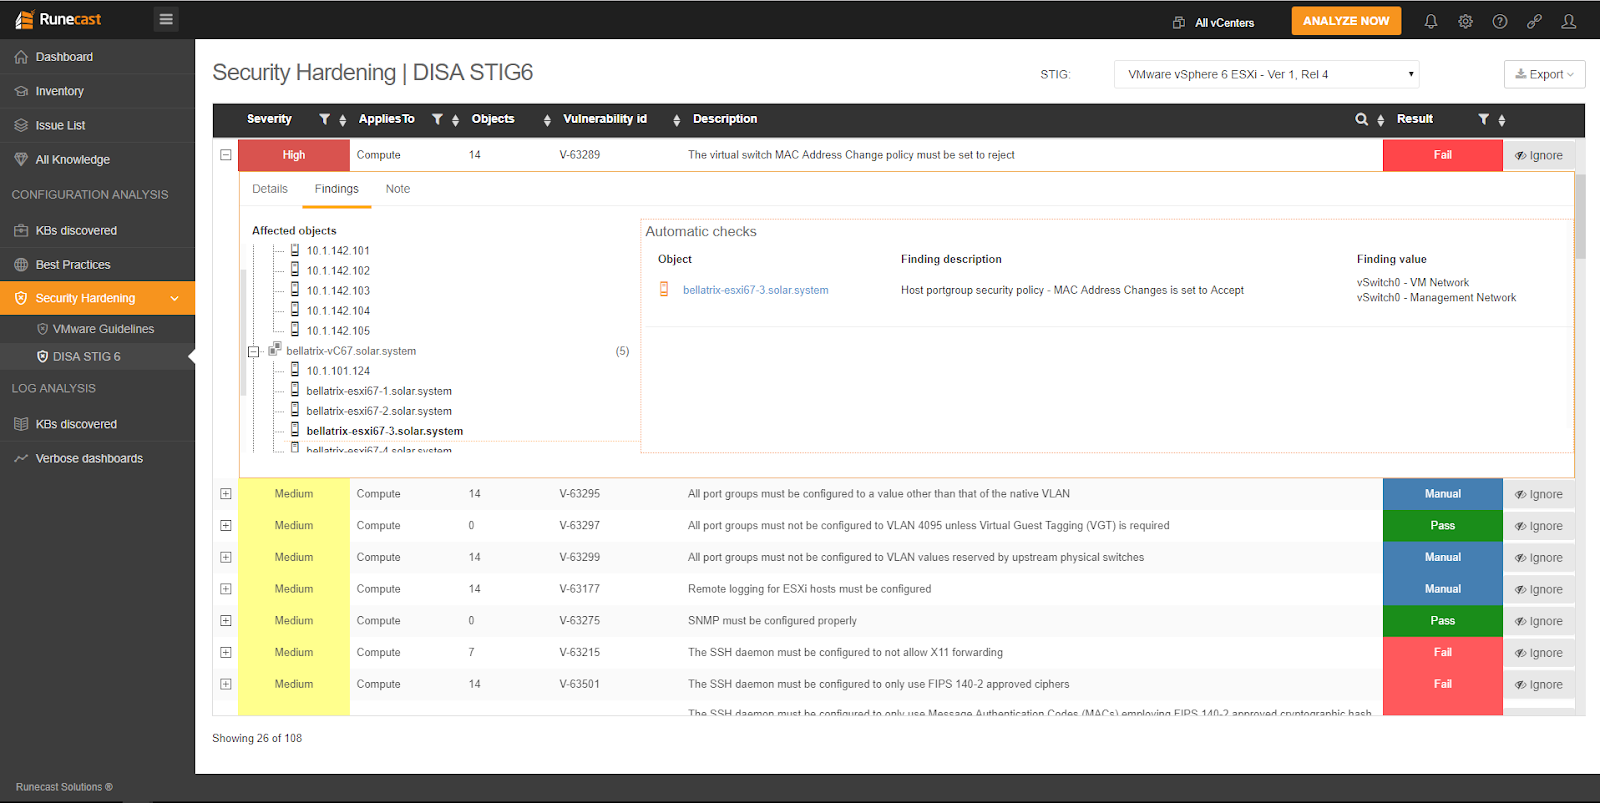 How to be DISA STIG-compliant with Runecast Analyzer